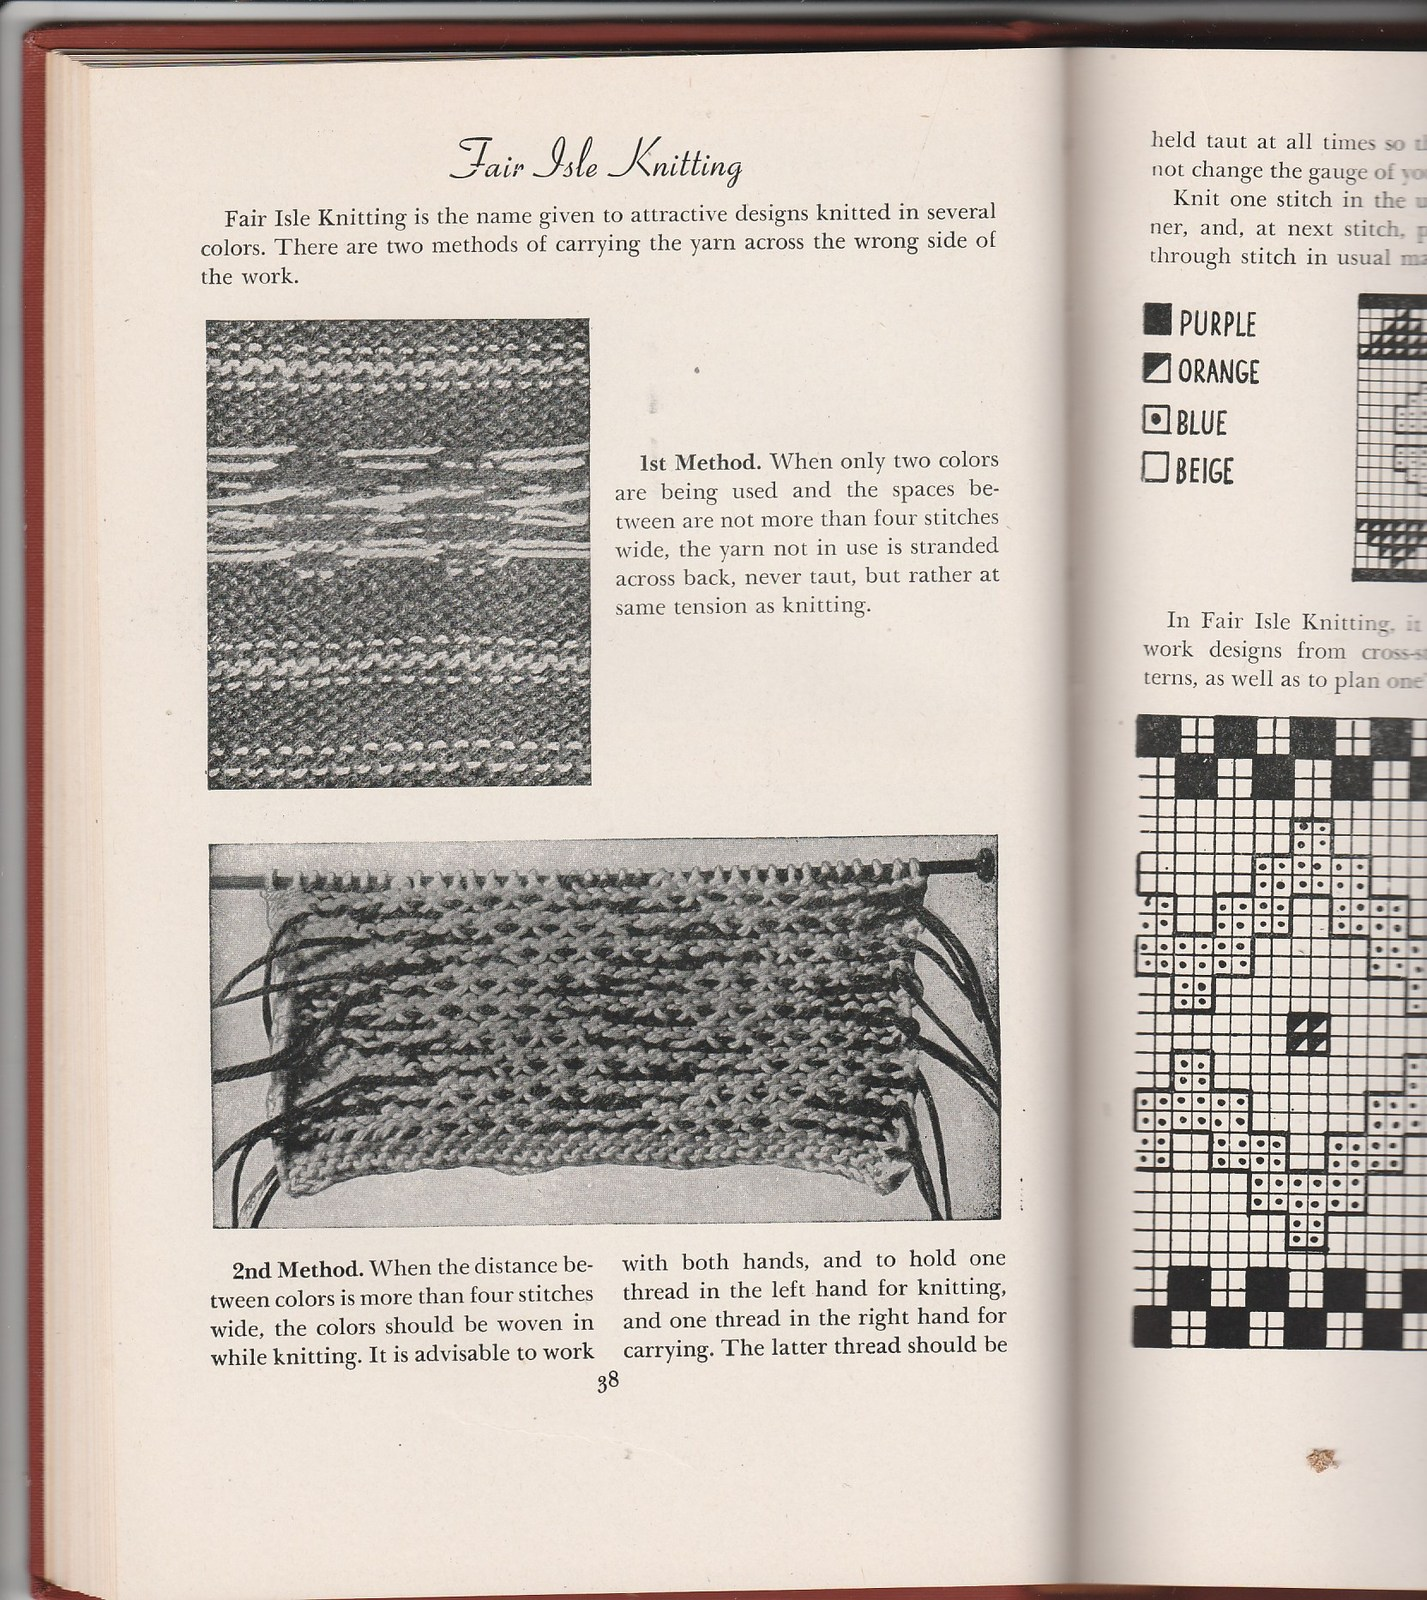 COMPLETE GUIDE TO MODERN KNITTING & CROCHETING 1947 300 illustrations